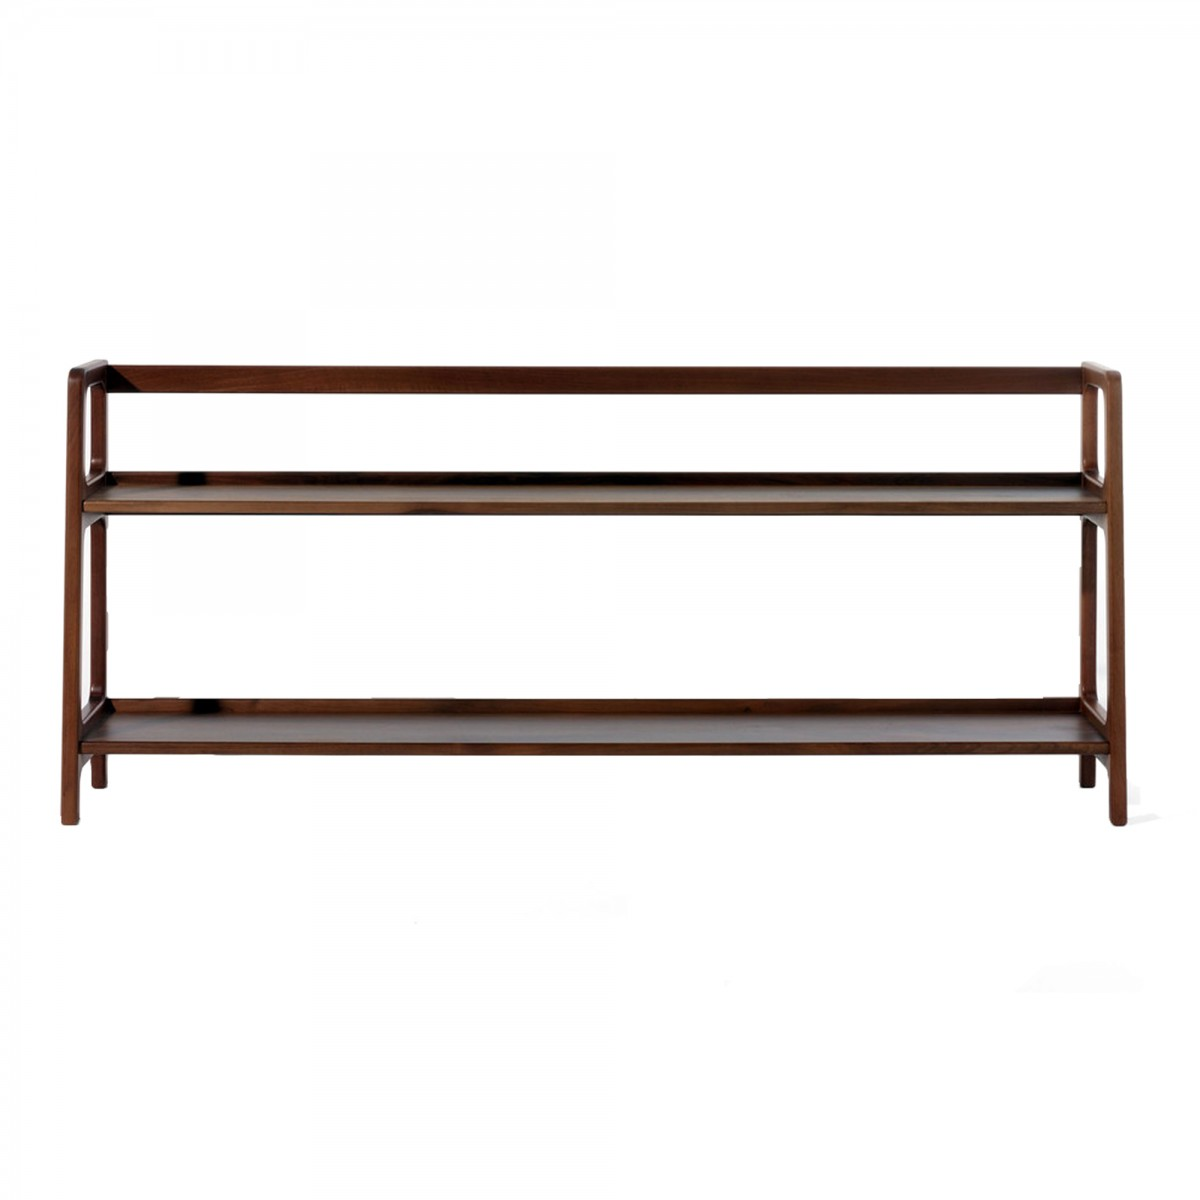 etagere noyer leaf low walnut tree shelf habitat etagere pierre vandel ronce de noyer ebay. Black Bedroom Furniture Sets. Home Design Ideas